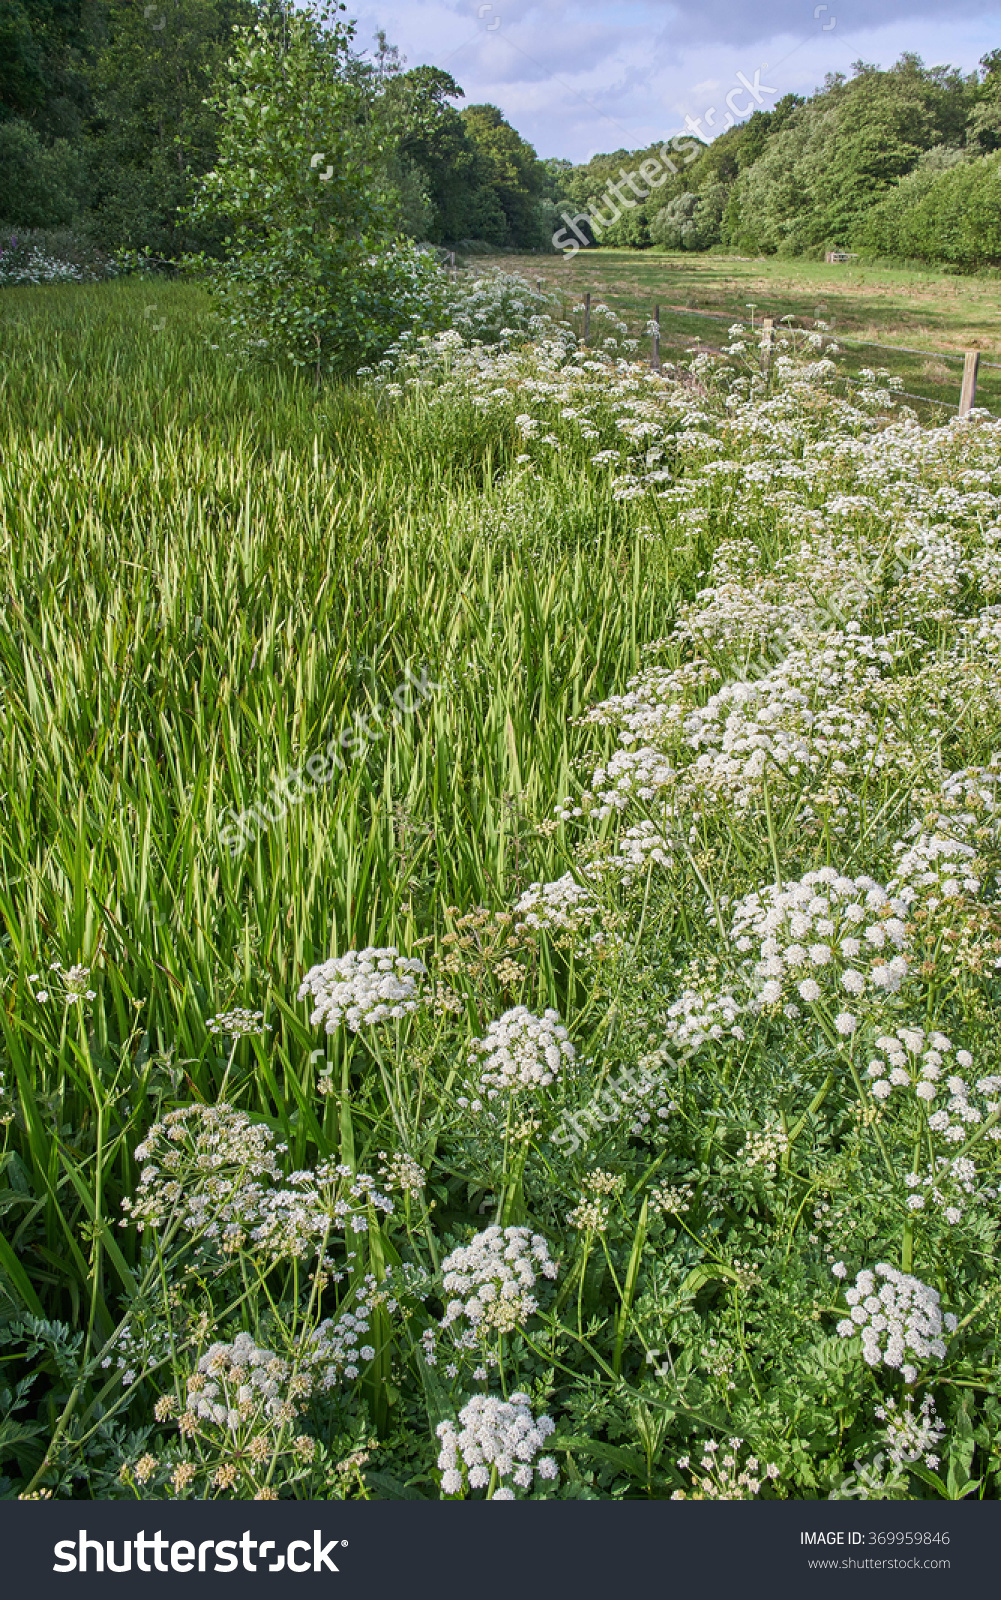 Hemlock Water Dropwort Growing By An Overgrown Pond With Branched.